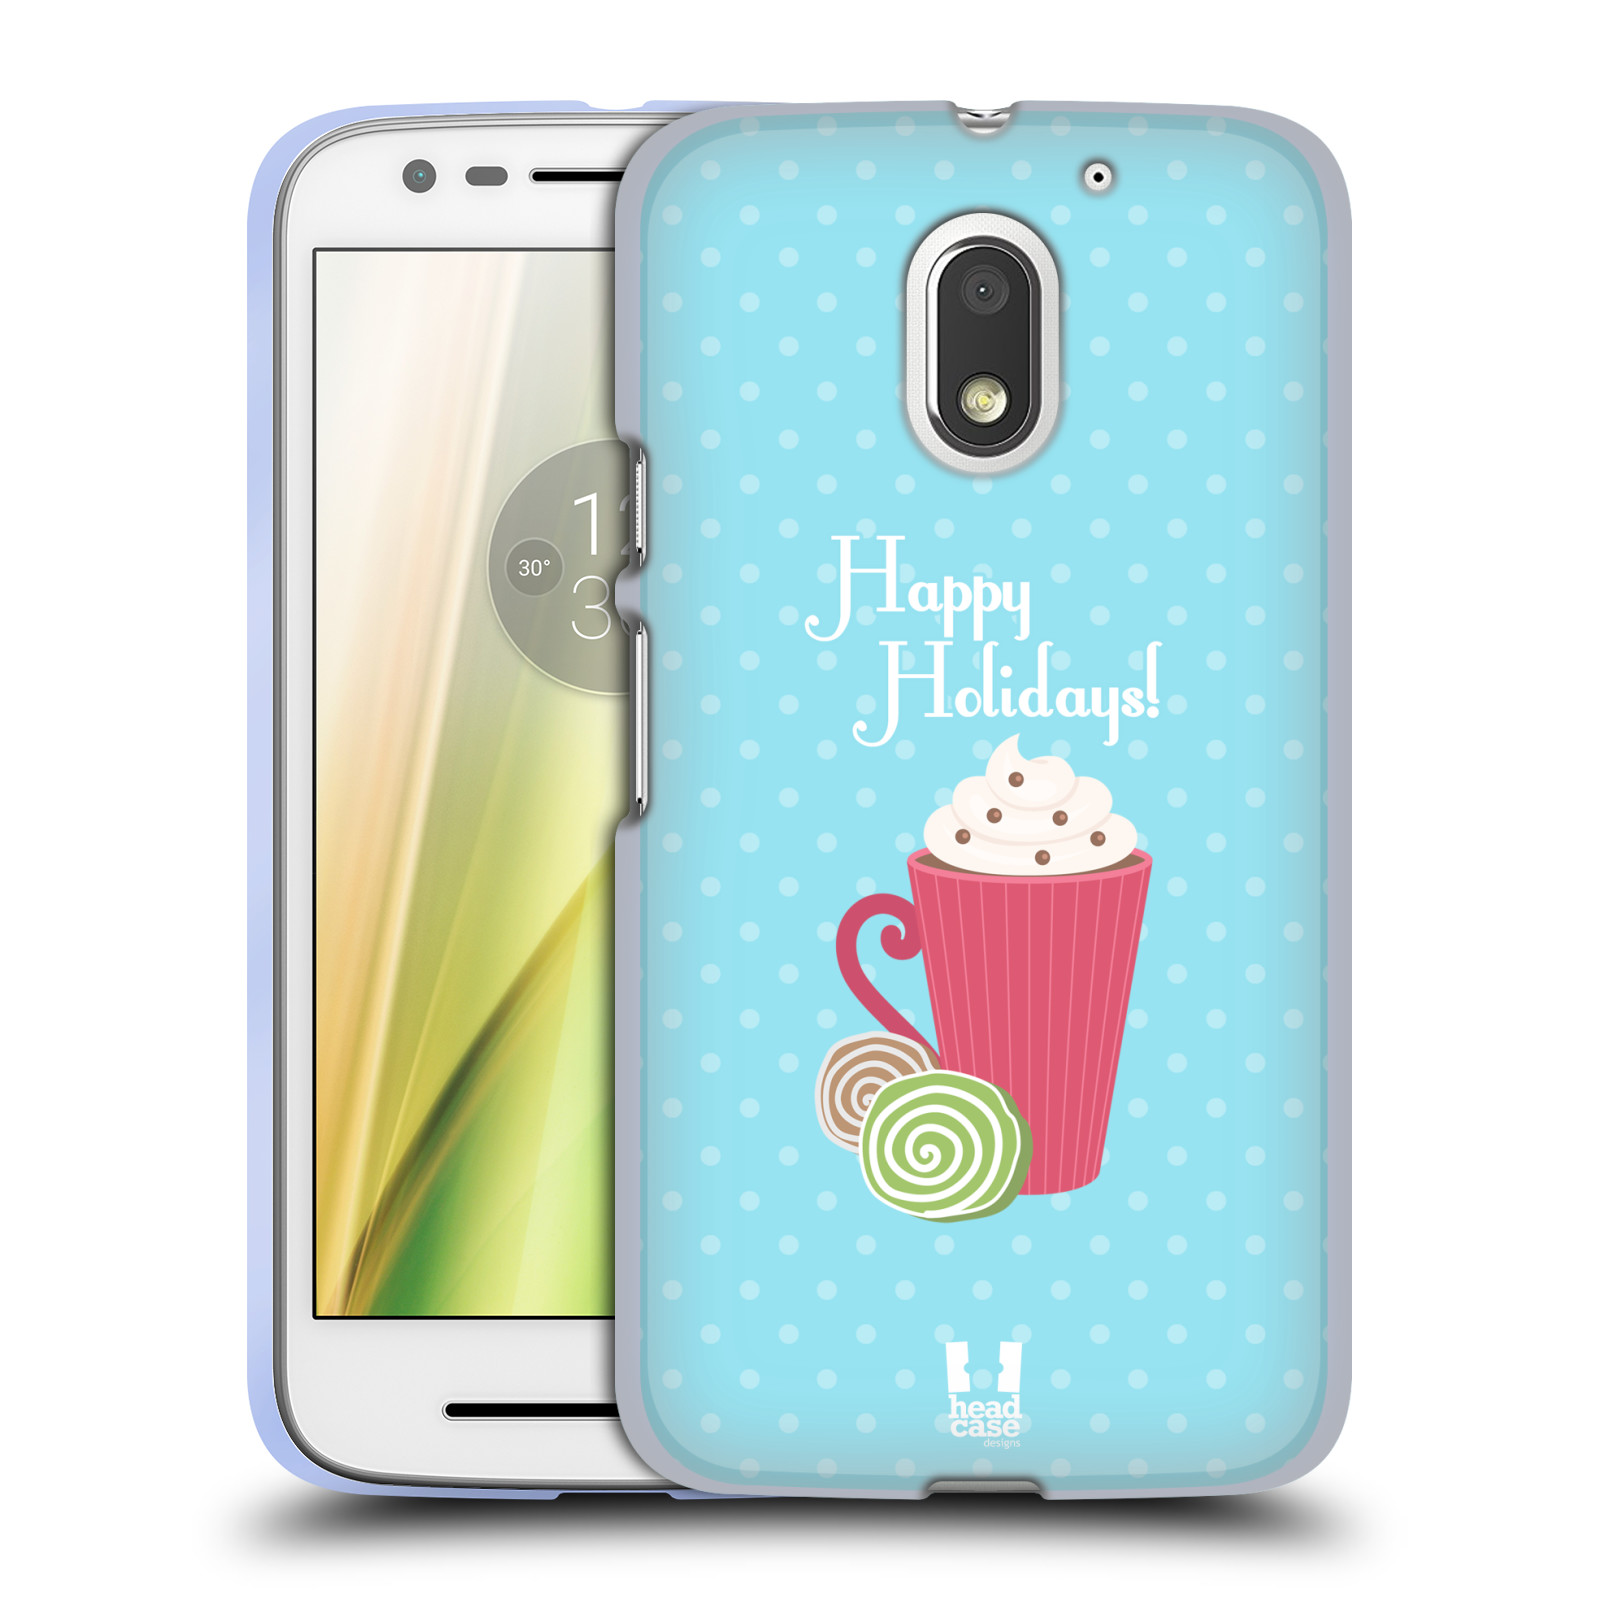 HEAD-CASE-LES-PLAISIRS-DE-LA-FETE-ETUI-COQUE-EN-GEL-POUR-MOTOROLA-MOTO-E3-POWER